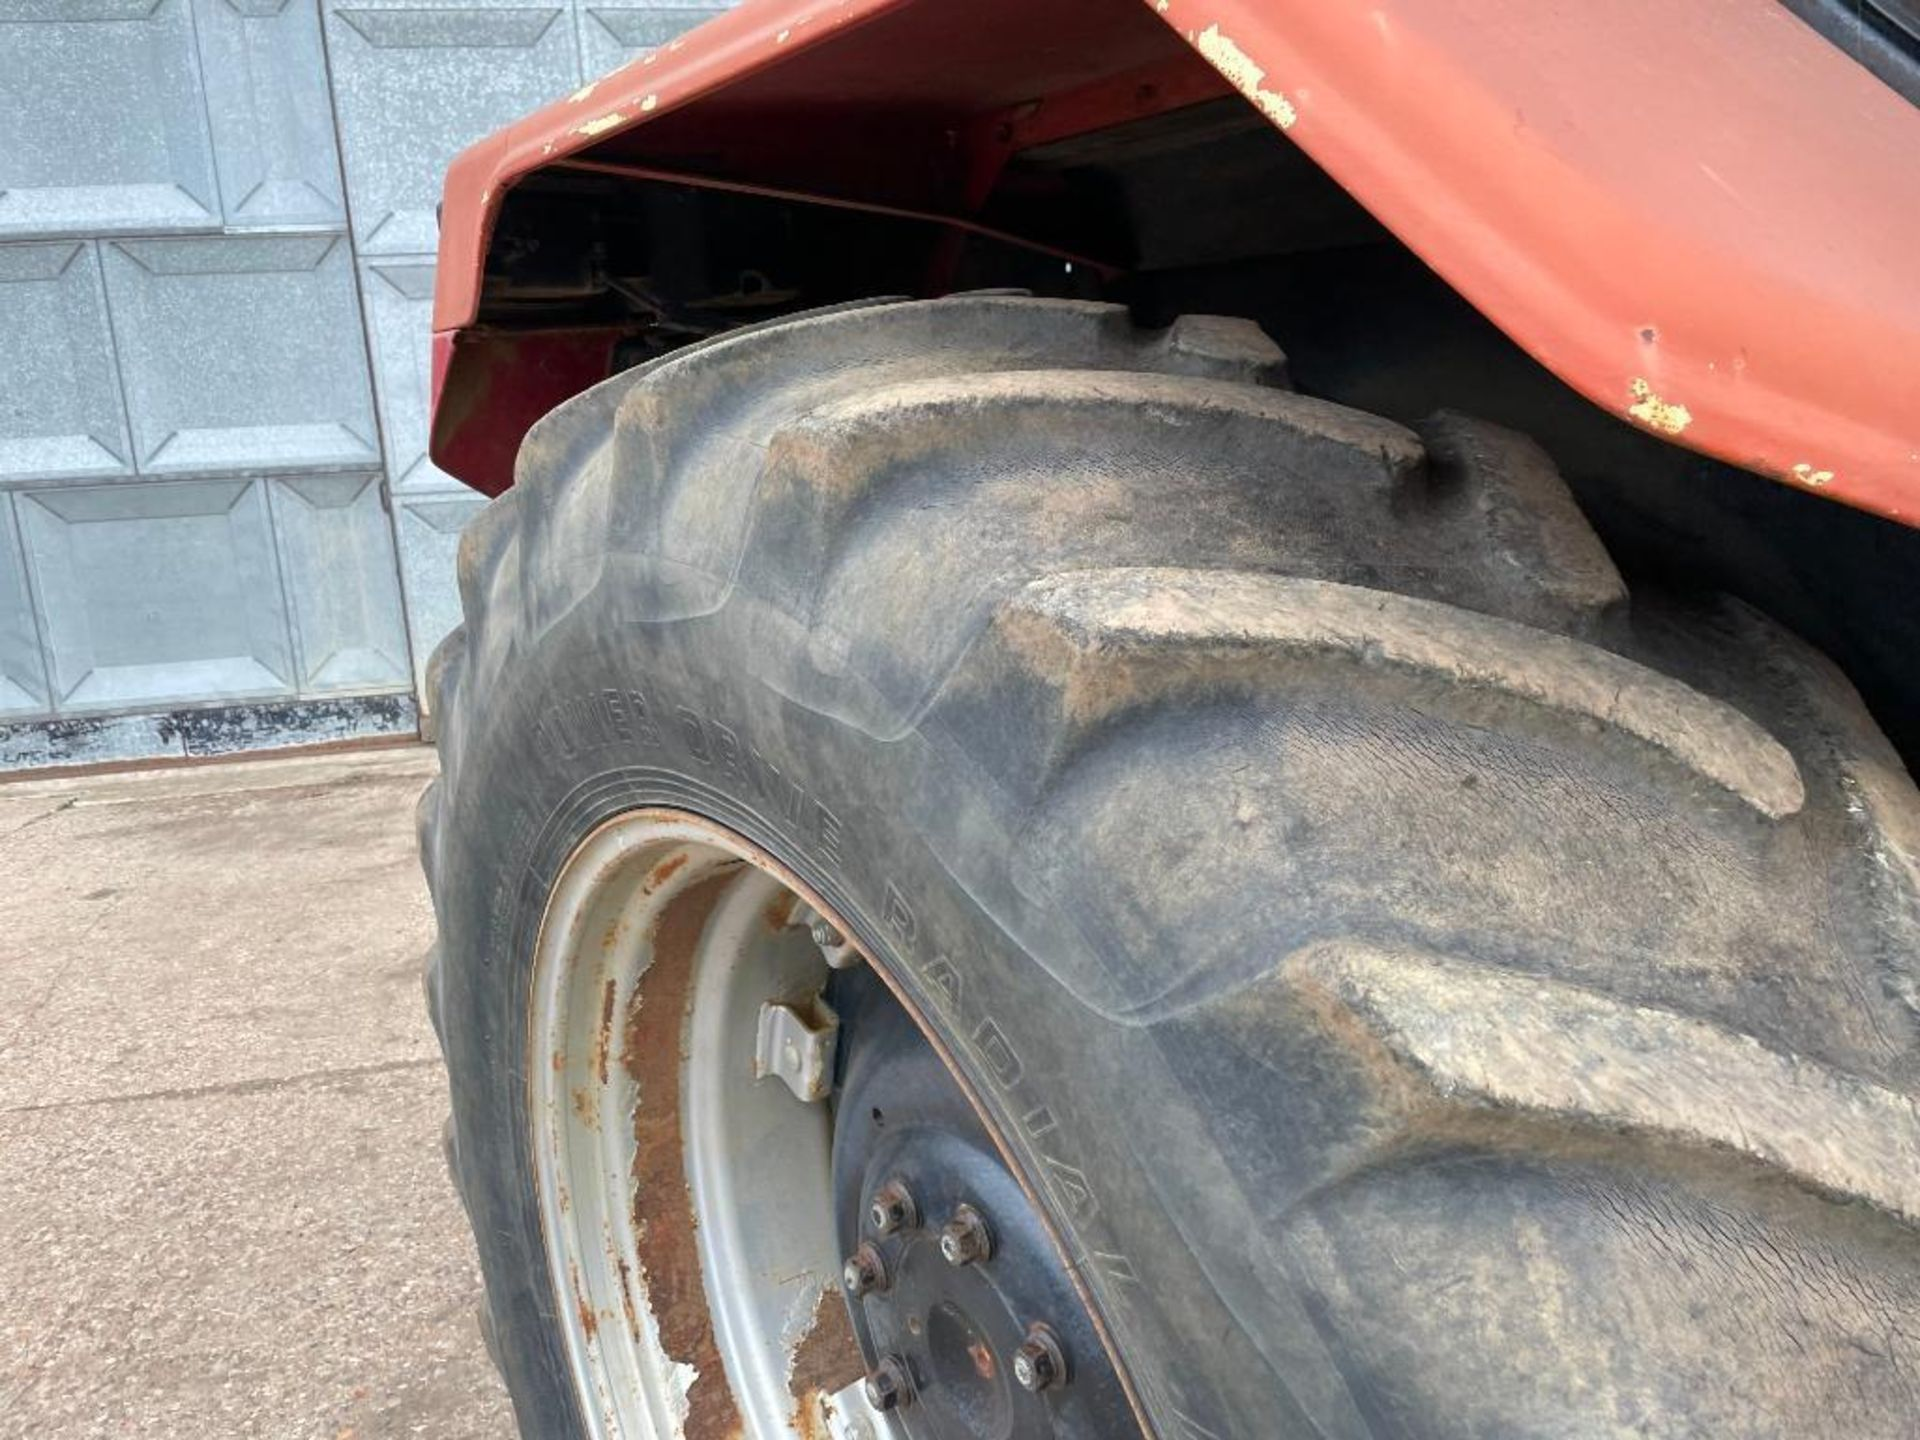 1997 Case IH 5150 Maxxum Plus Powershift 4wd tractor with 2 spools, PUH and front wafer weights on 1 - Image 5 of 13